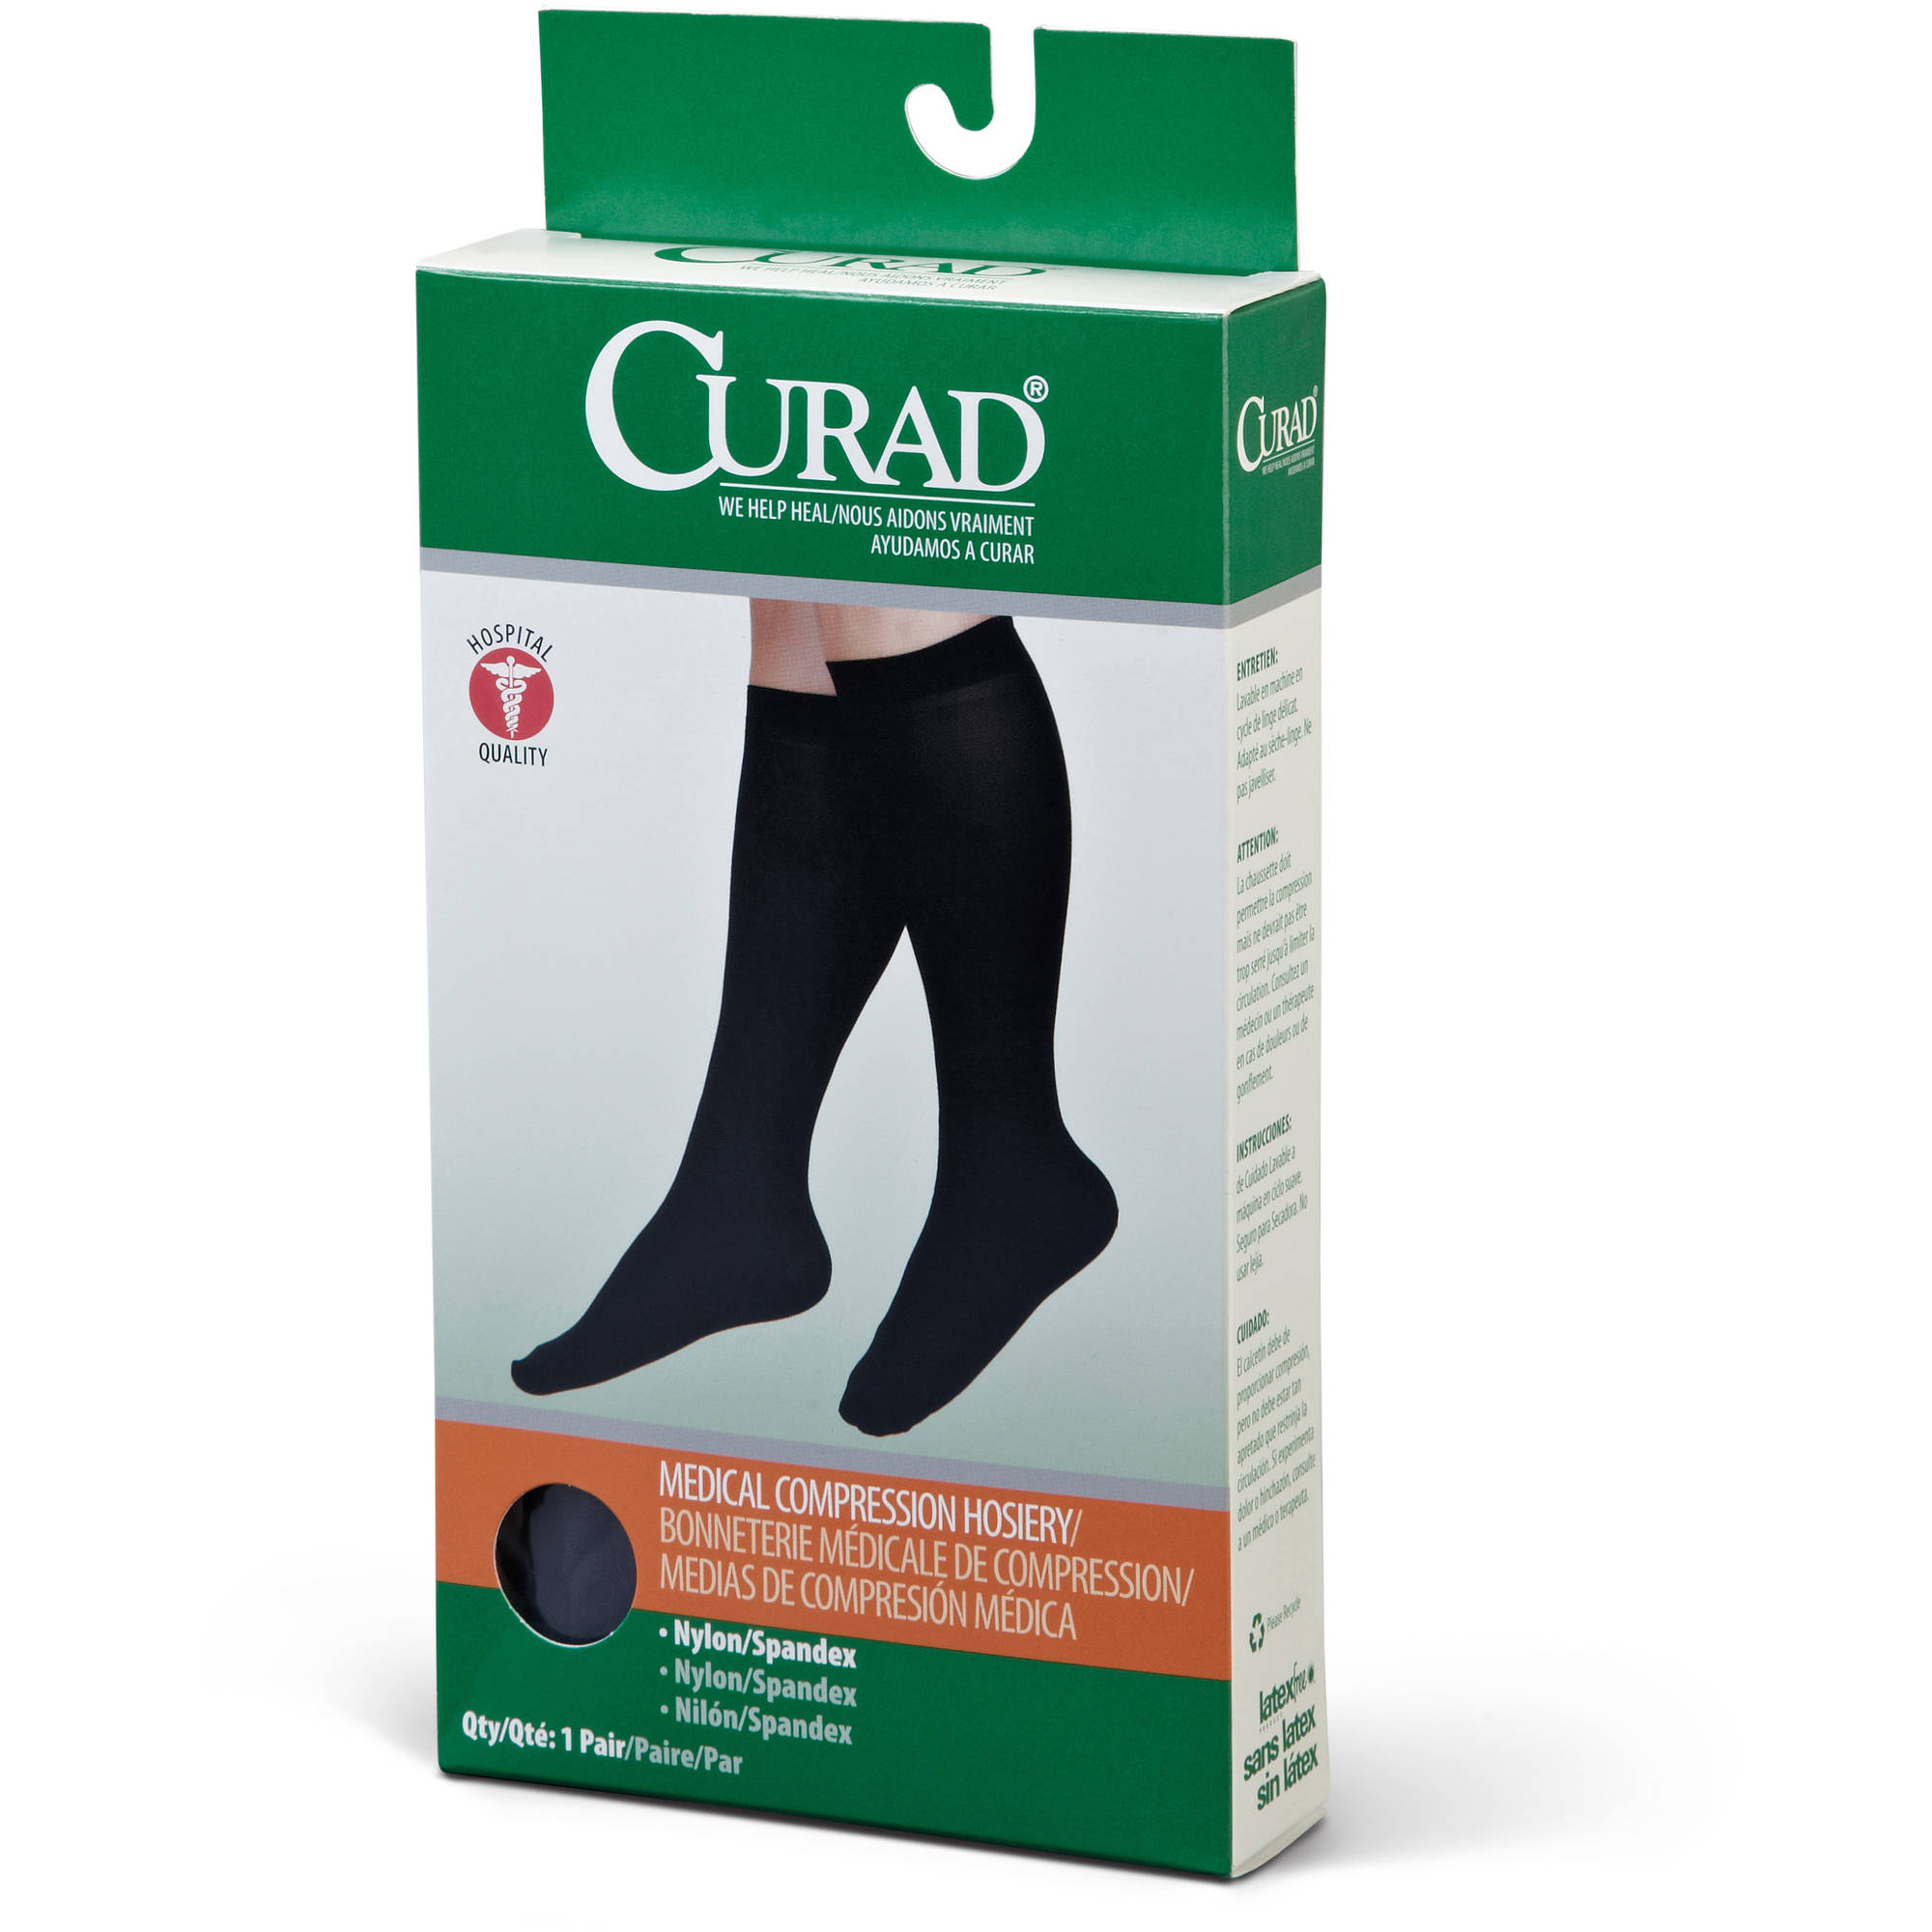 Curad Knee-High Compression Hosiery 15-20mmHg